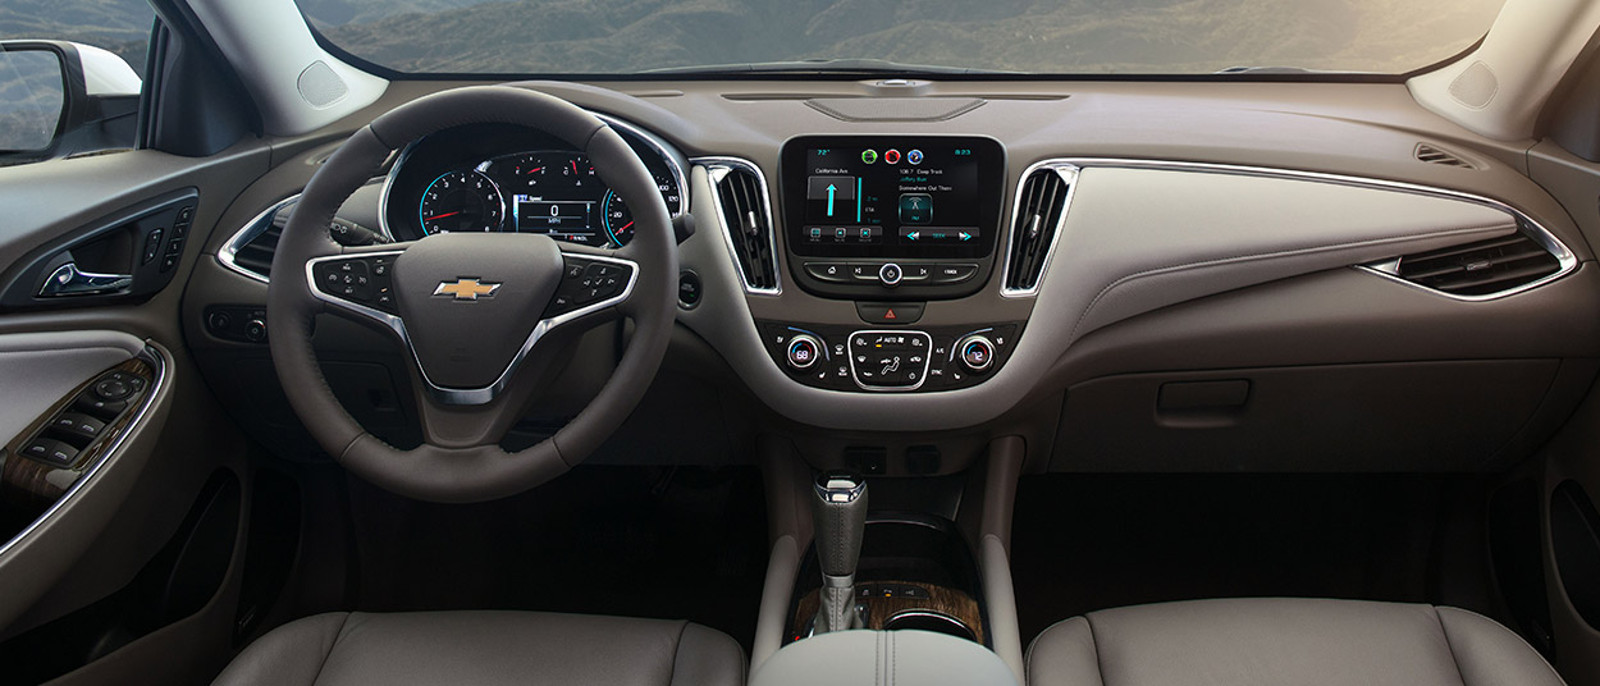 2016 Chevy Malibu Interior